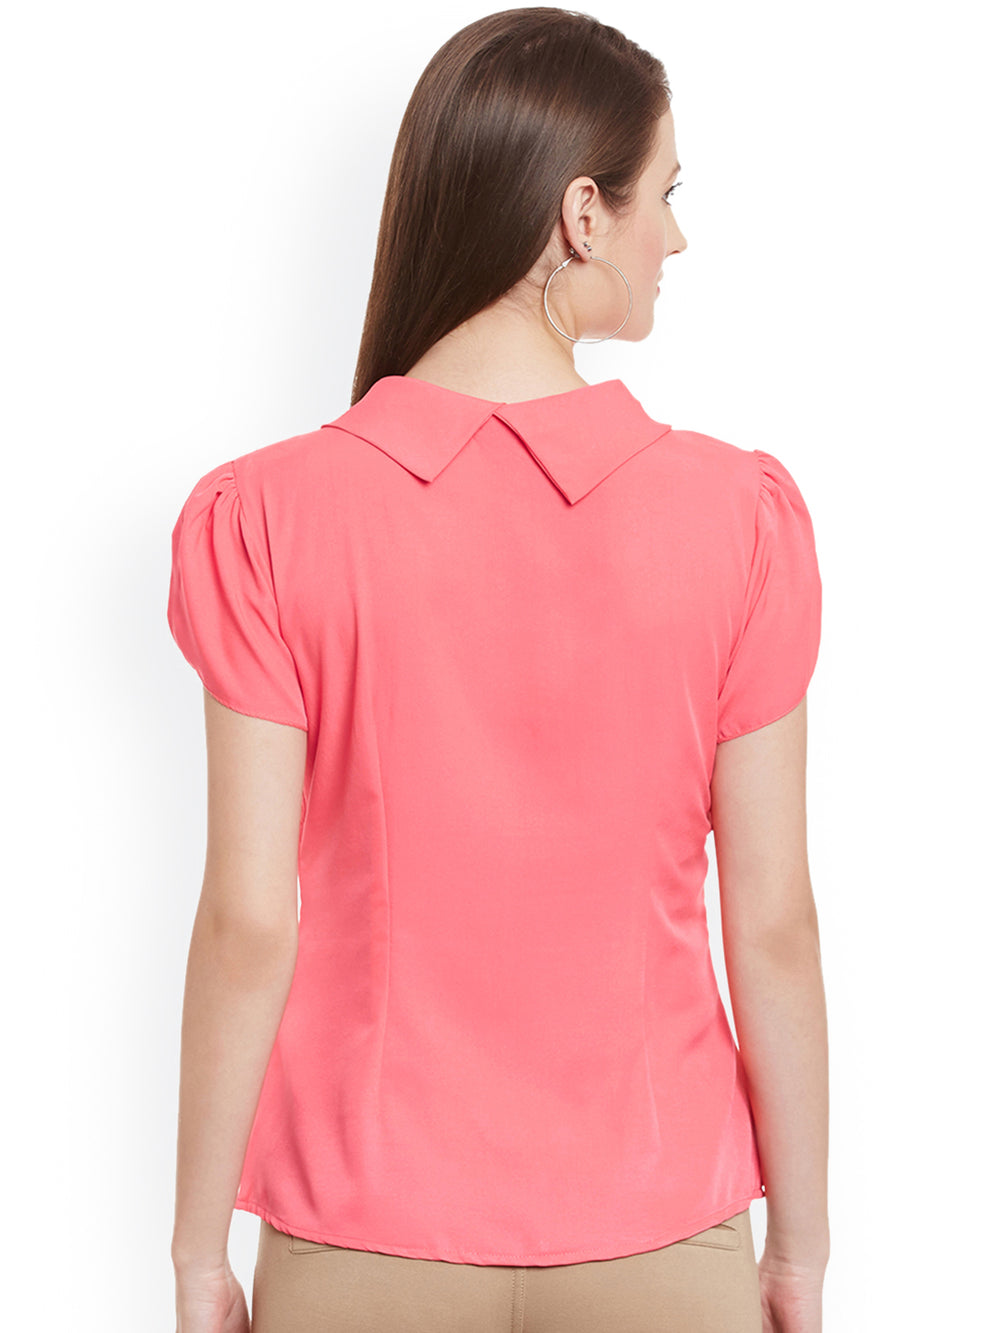 eyelet Women Peach-Coloured Top